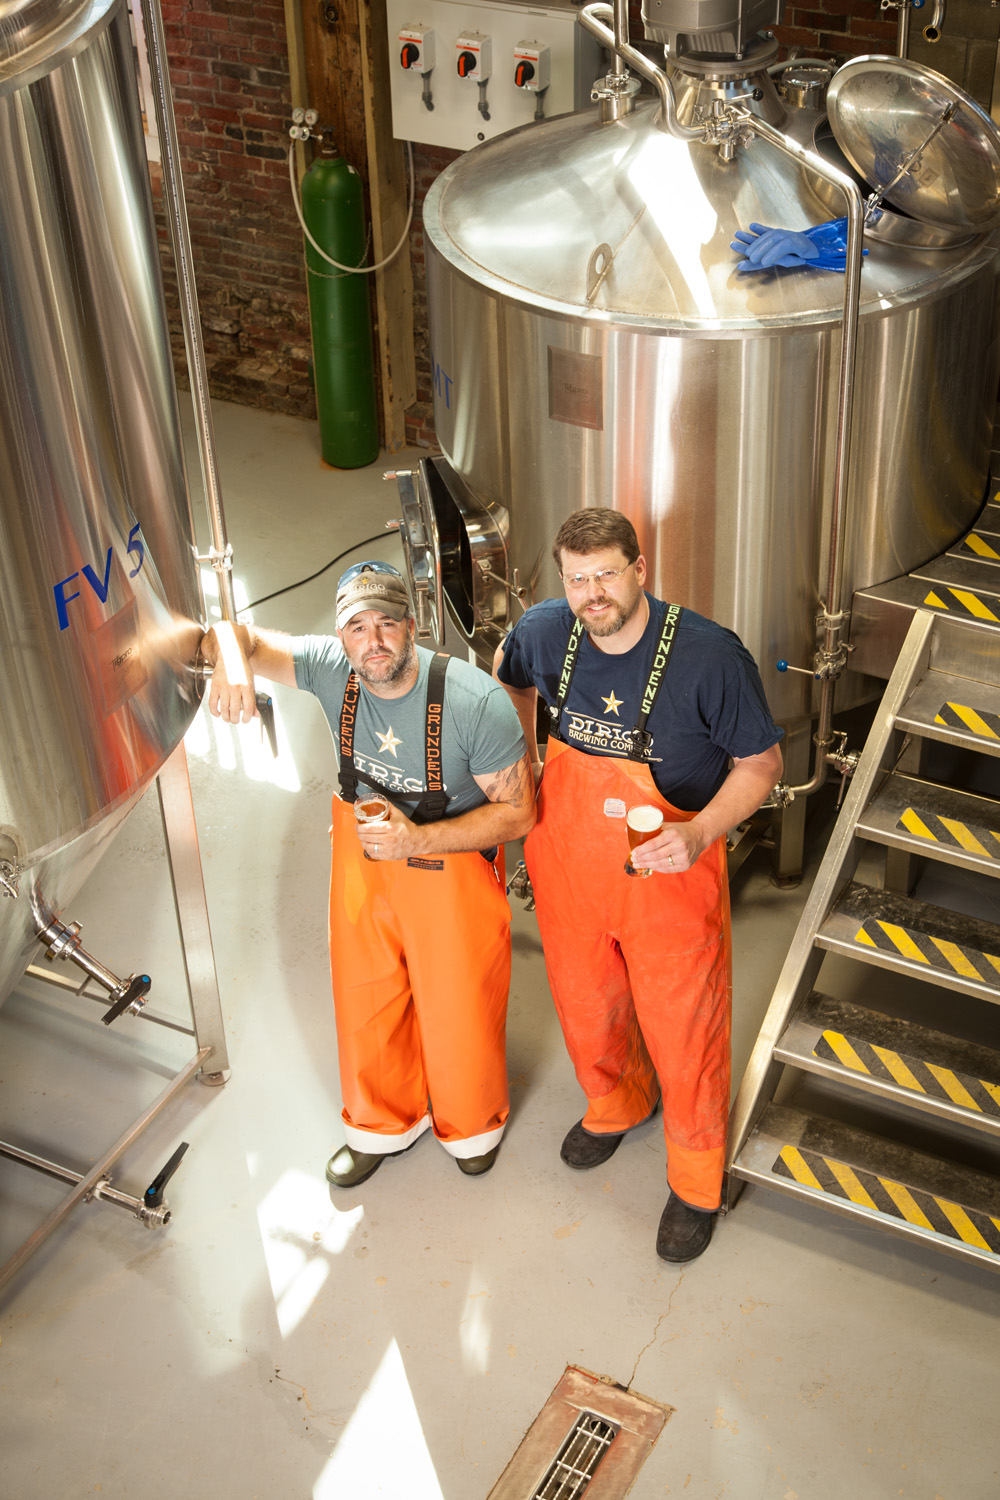 Mark Paulin, Brewer, Tom Bull, Brewmaster Dirigo Brewing Co. Bidderford, ME Established in 2016